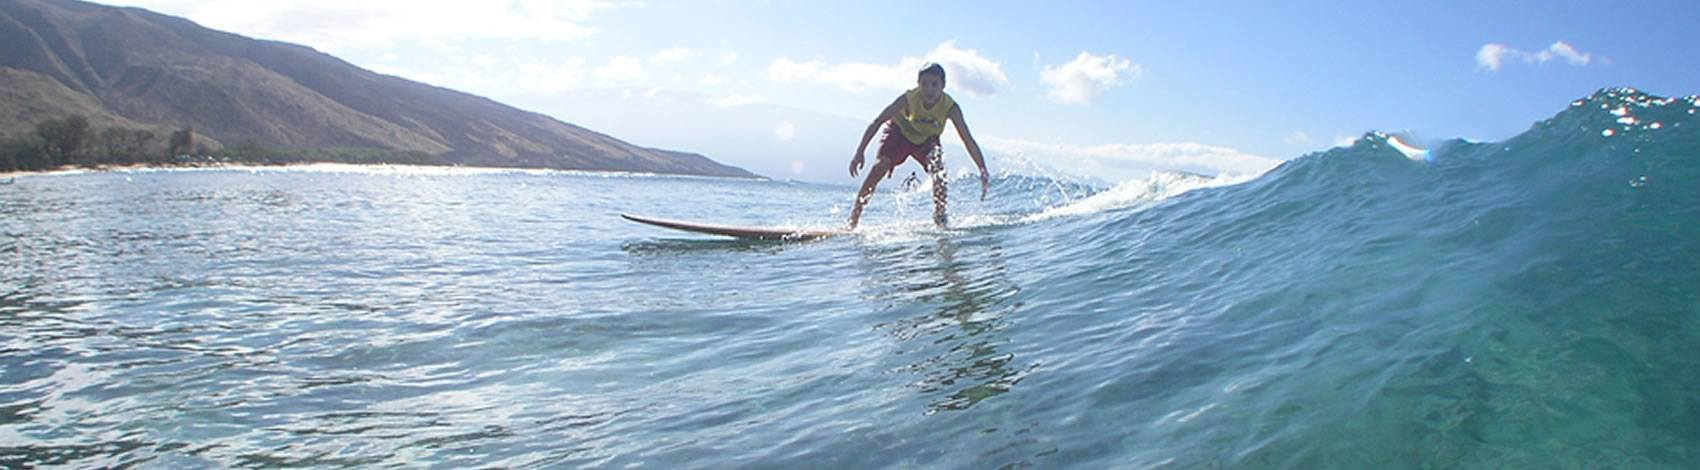 boy surfing with sun behind him